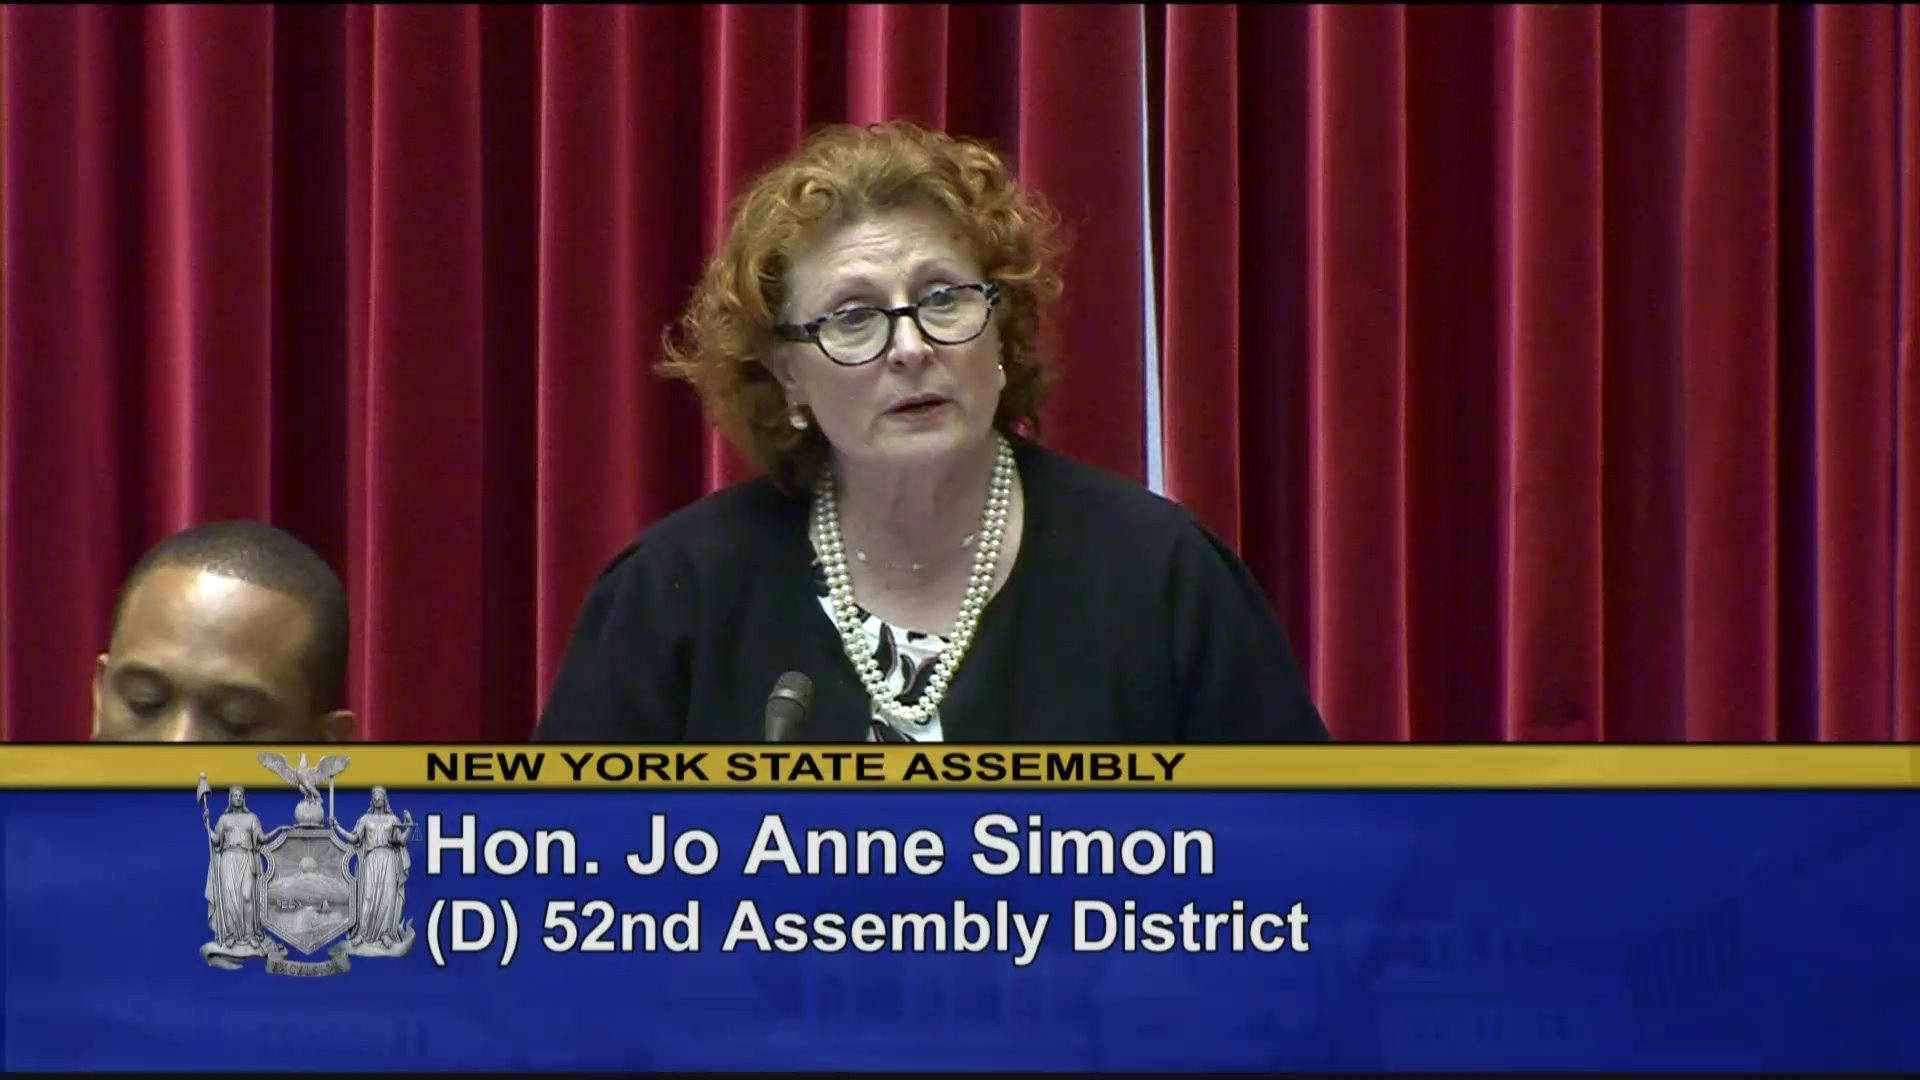 Assembly Member Simon Introduces Gender Neutral Legislation